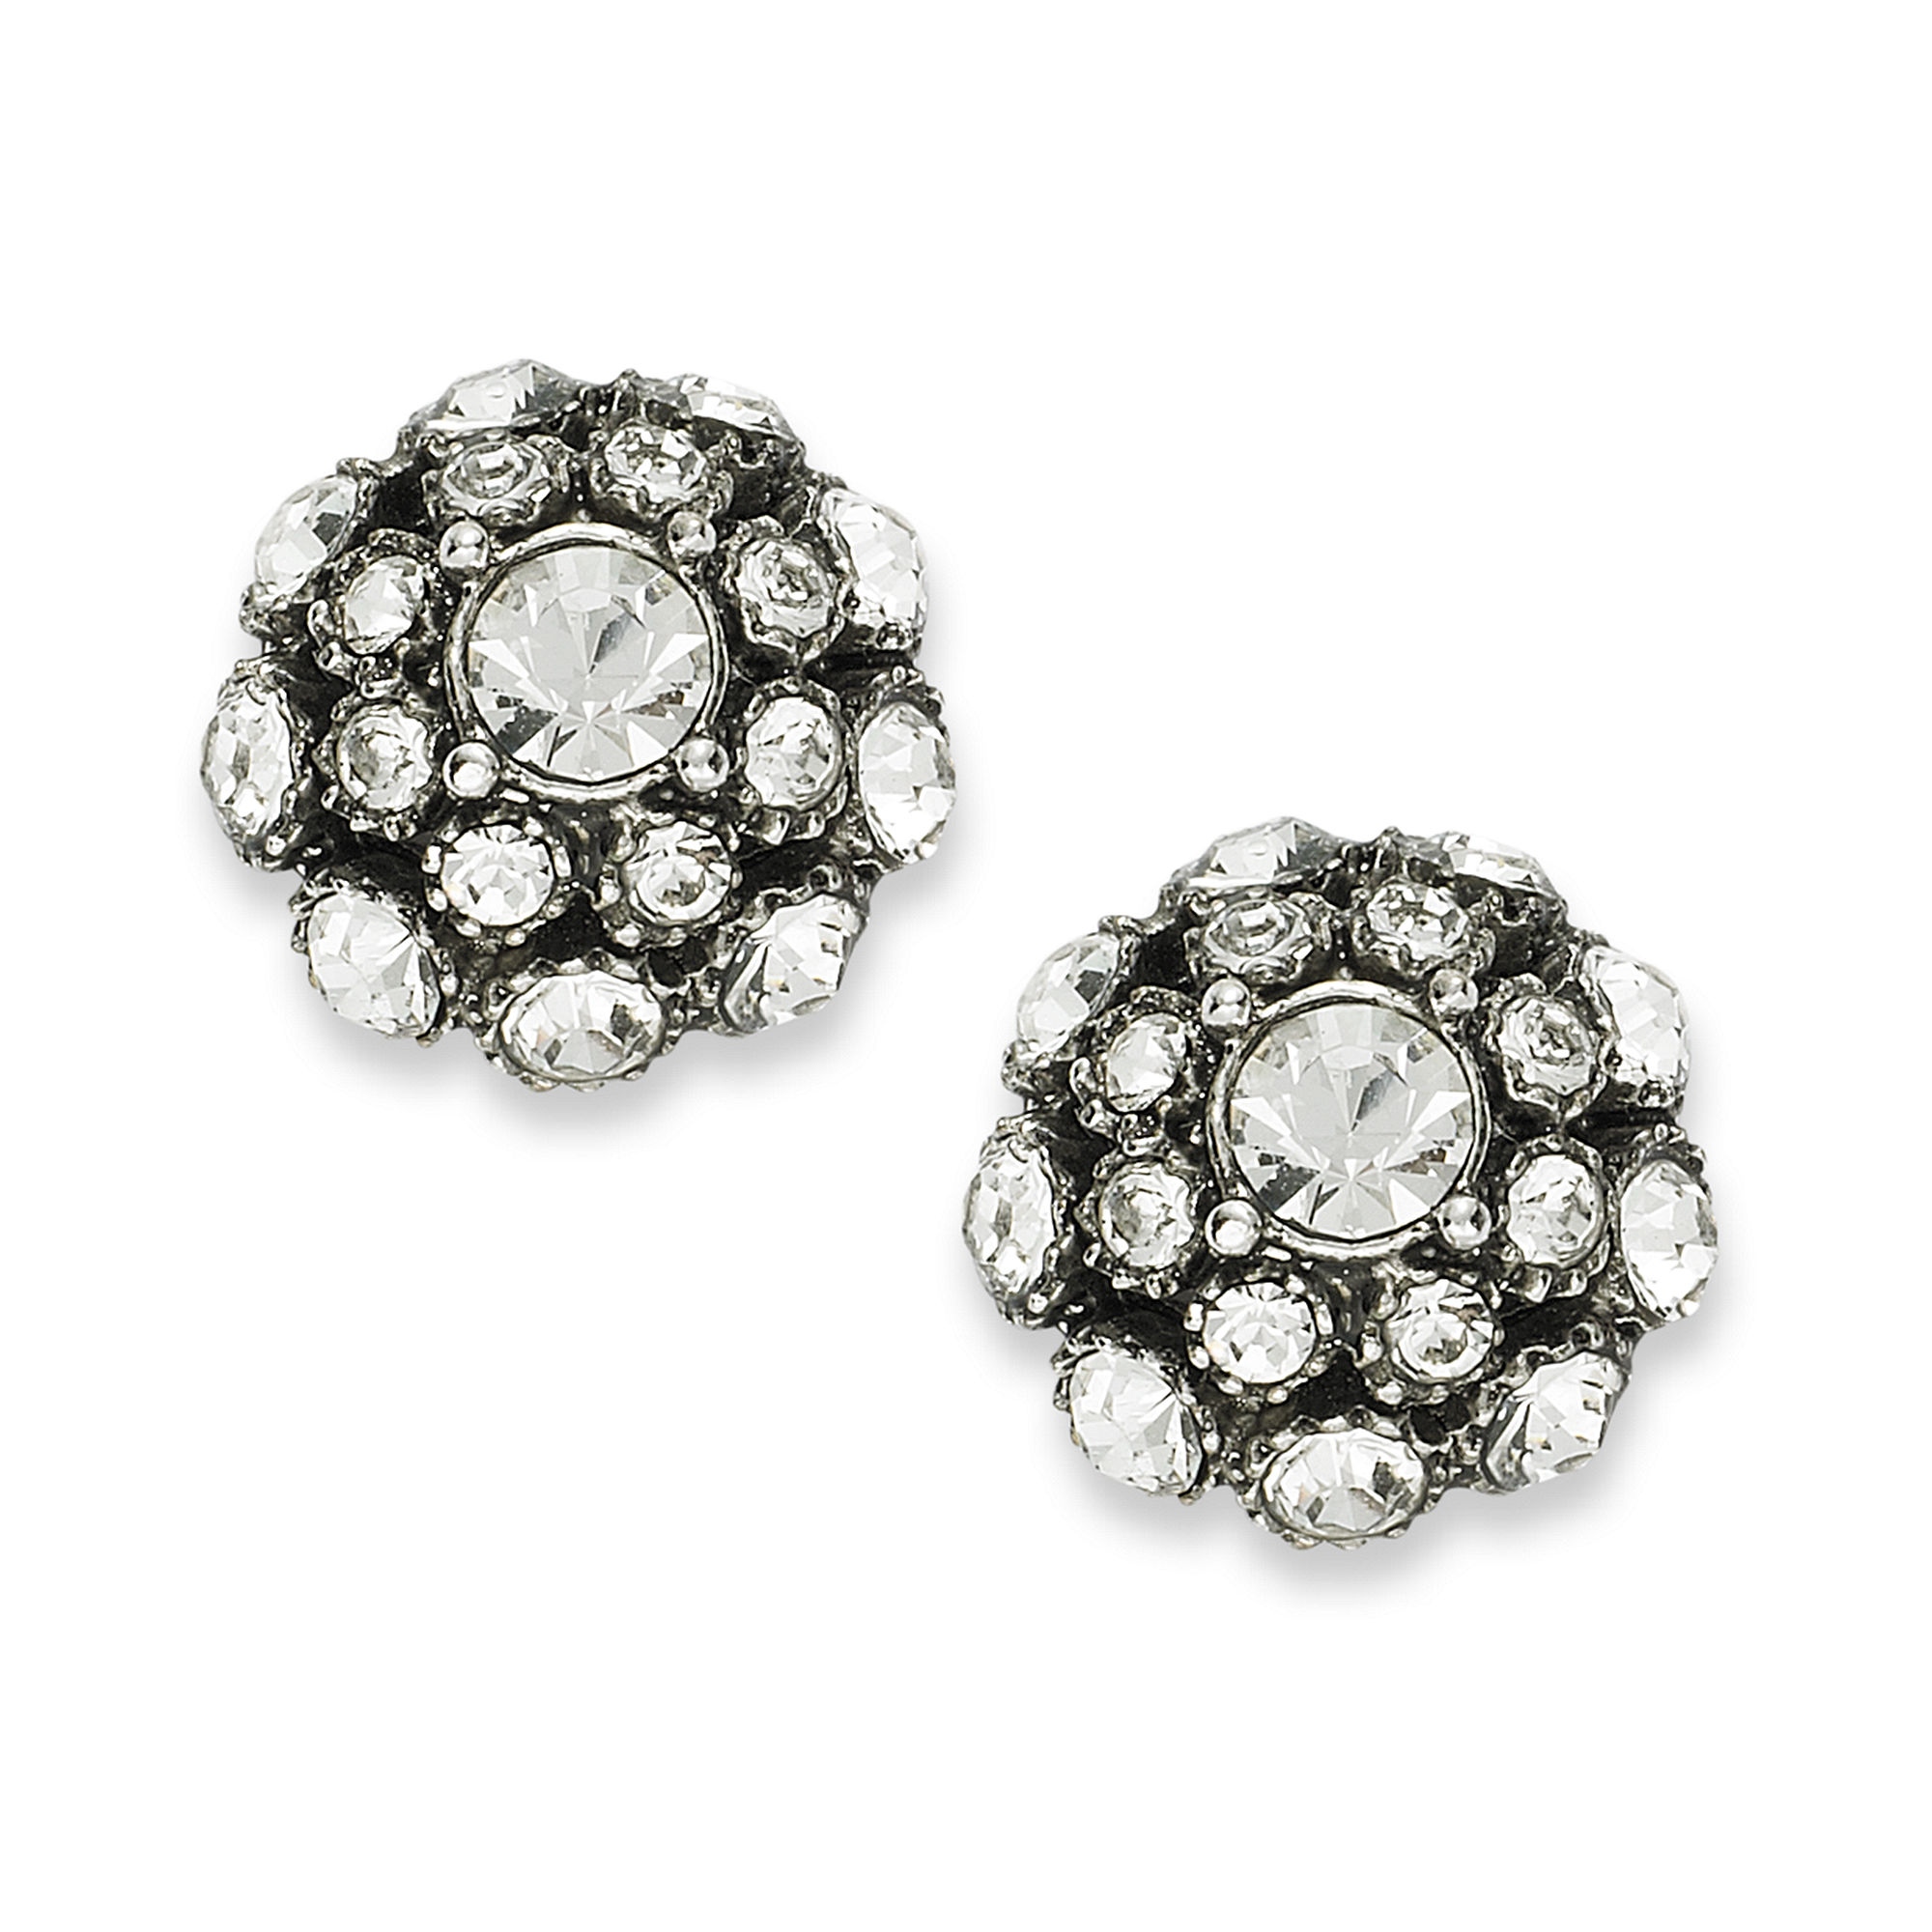 img the in pearl grams is three stud earrings diamond weighs vintage antique a triangle this pair of white gold sold